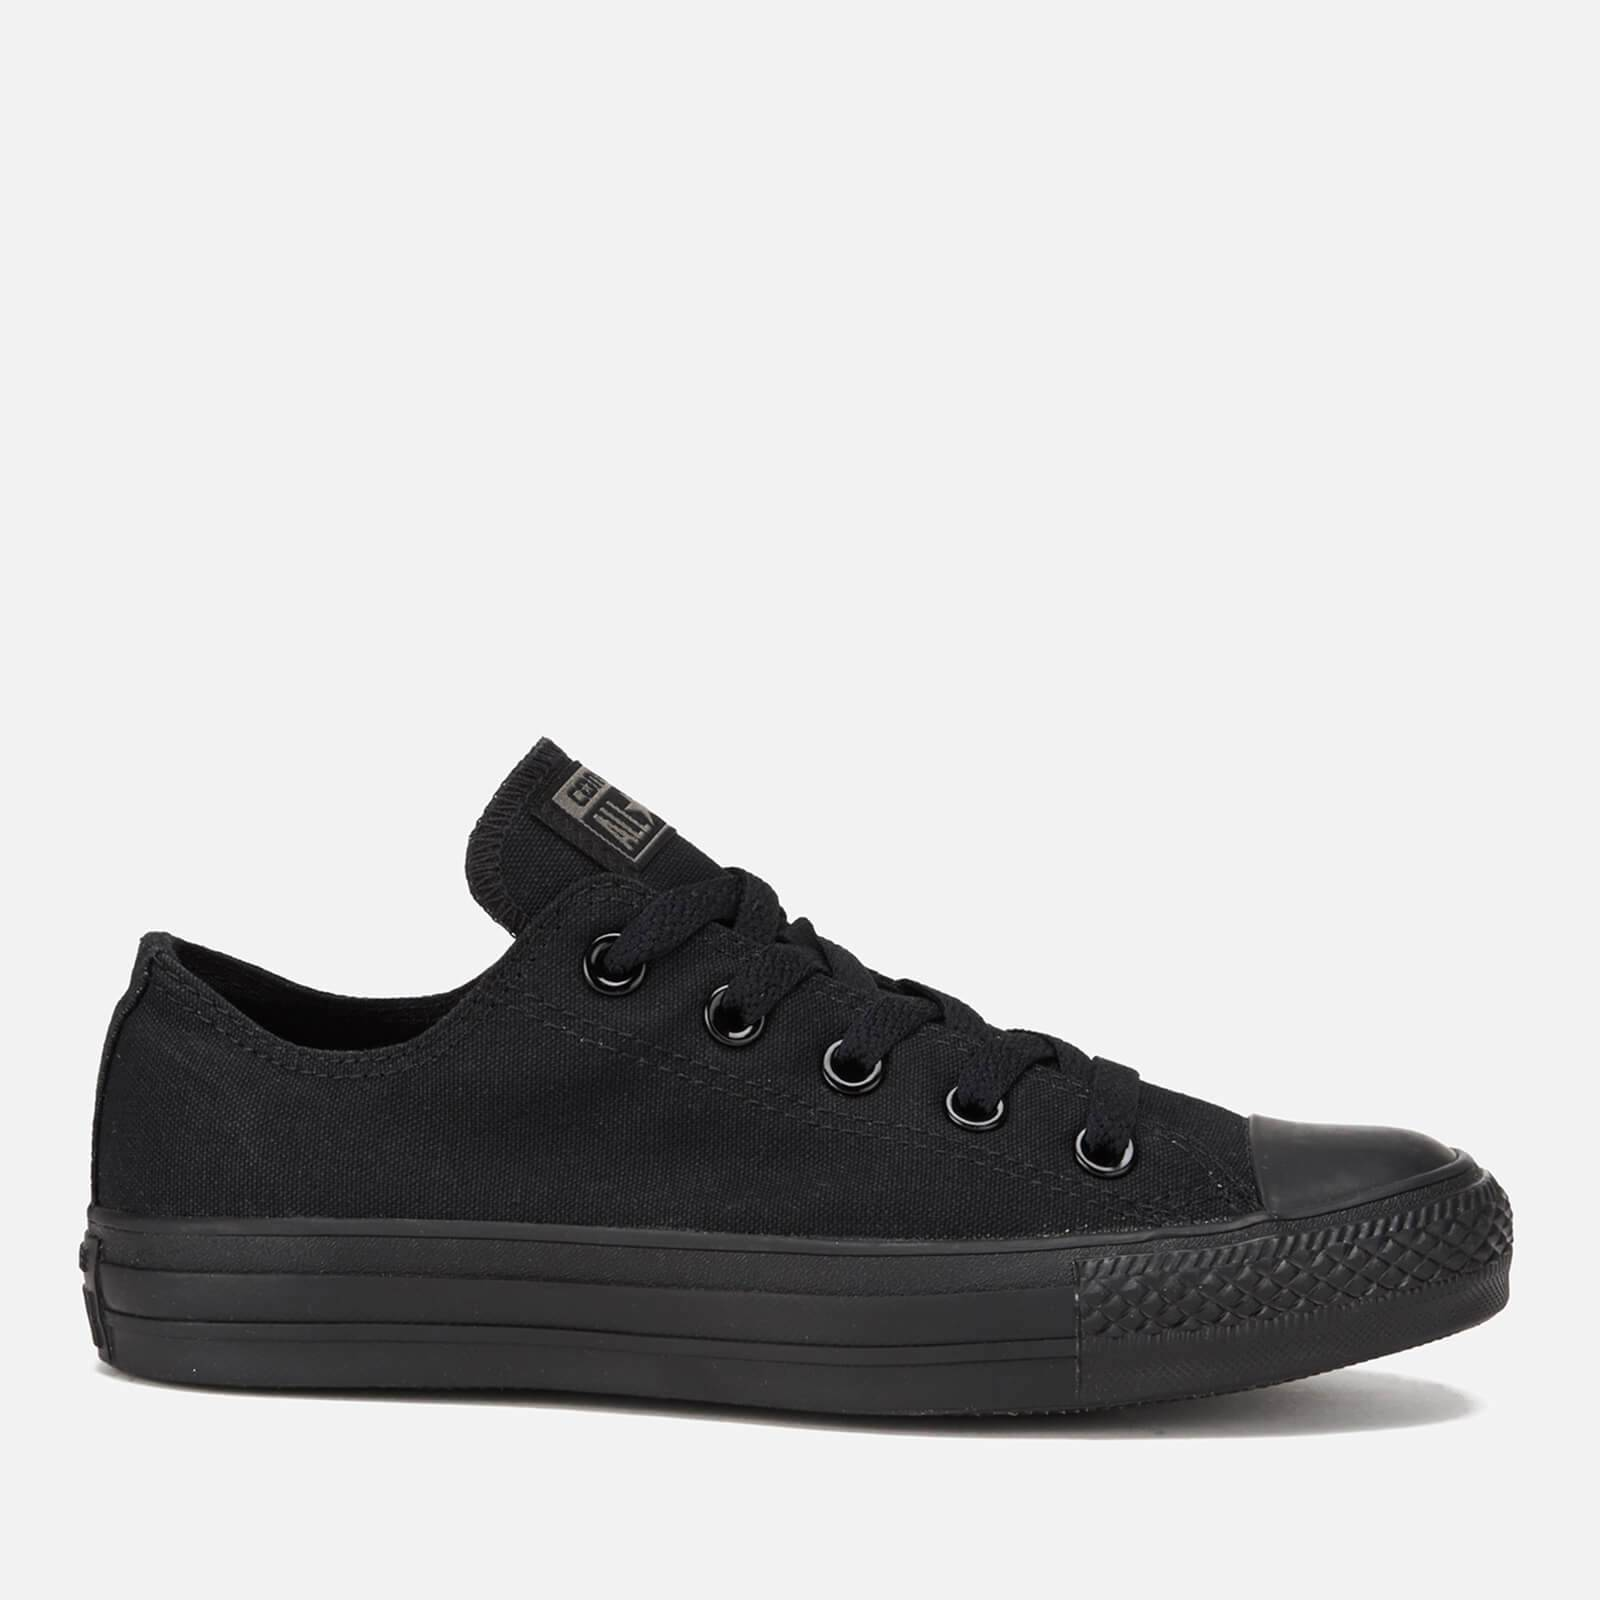 Converse Chuck Taylor All Star Ox Canvas Trainers - Black Monochrome - UK 8